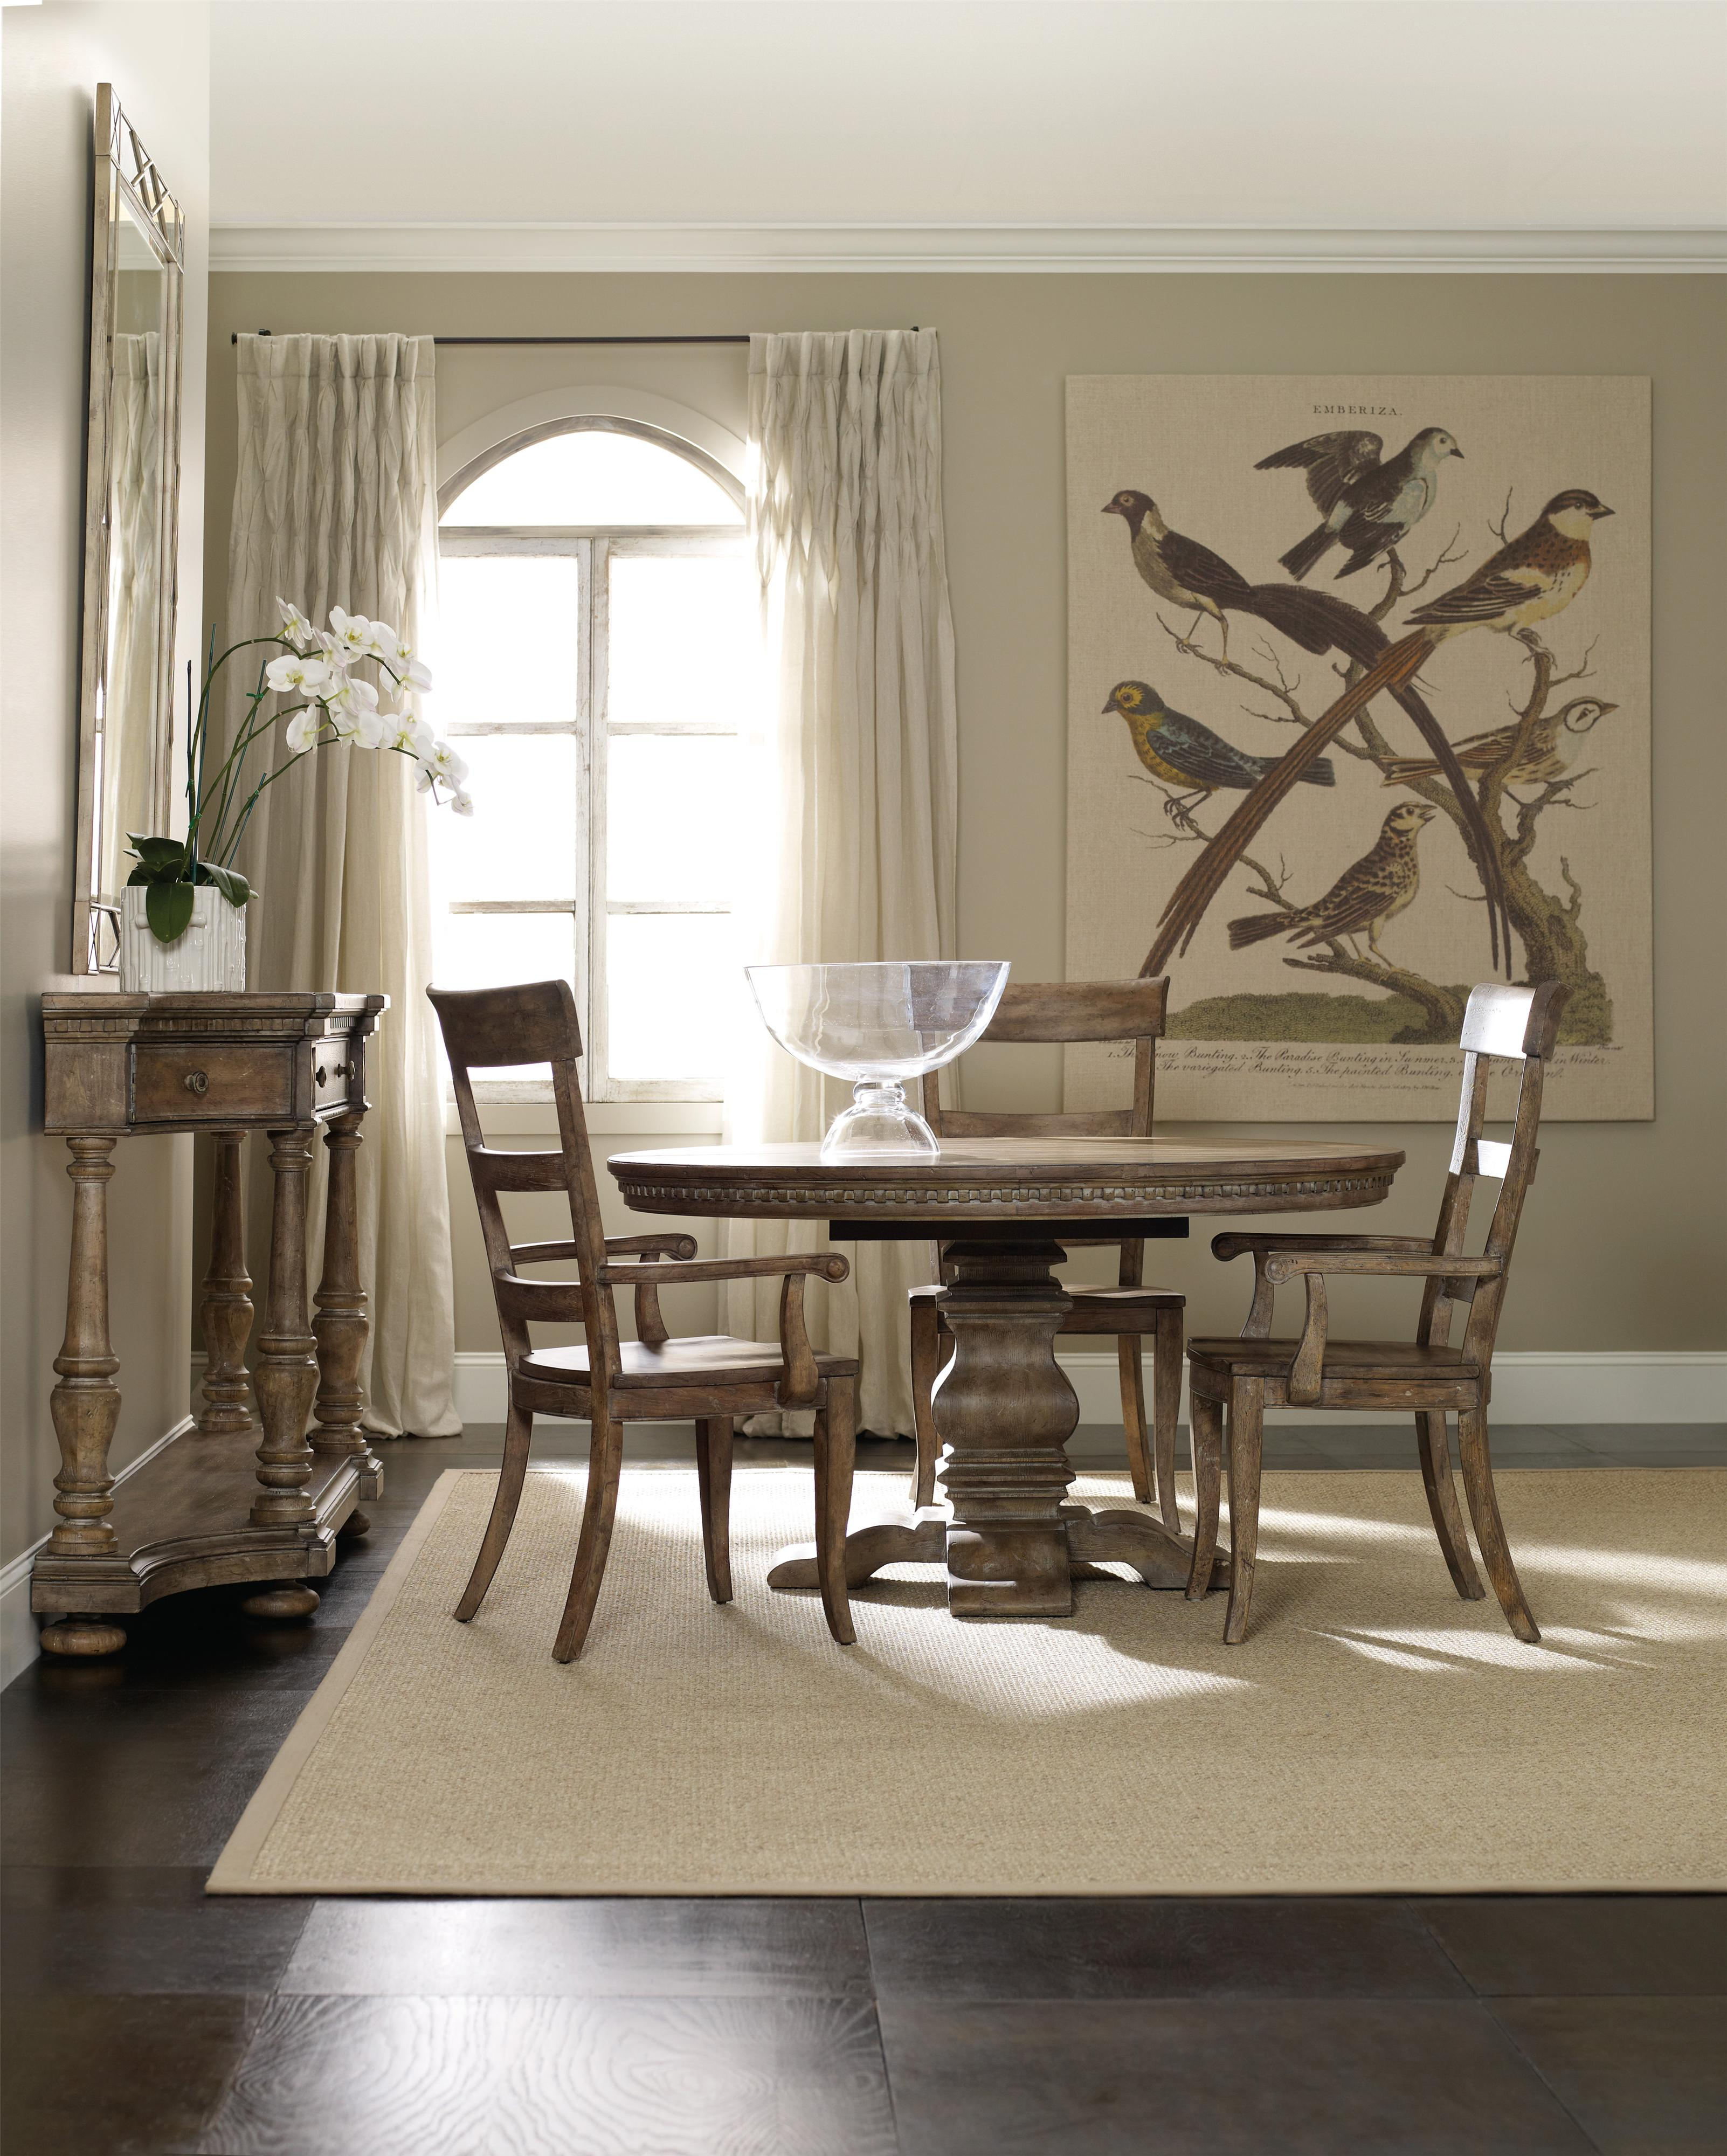 Hooker Furniture Sorella Formal Dining Room Group - Item Number: 5107 F Dining Room Group 3